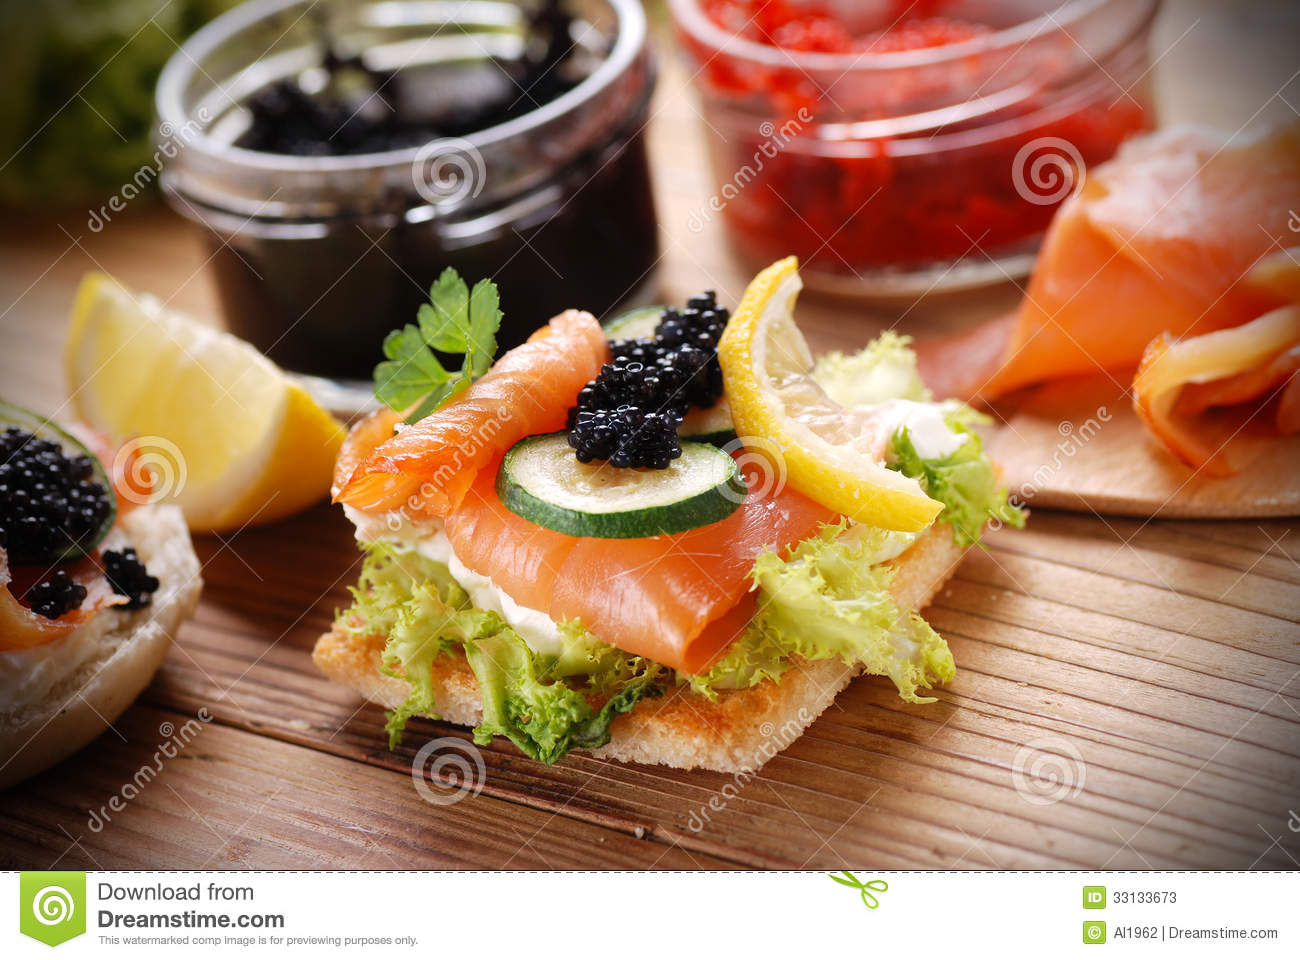 404 not found for Canape with caviar